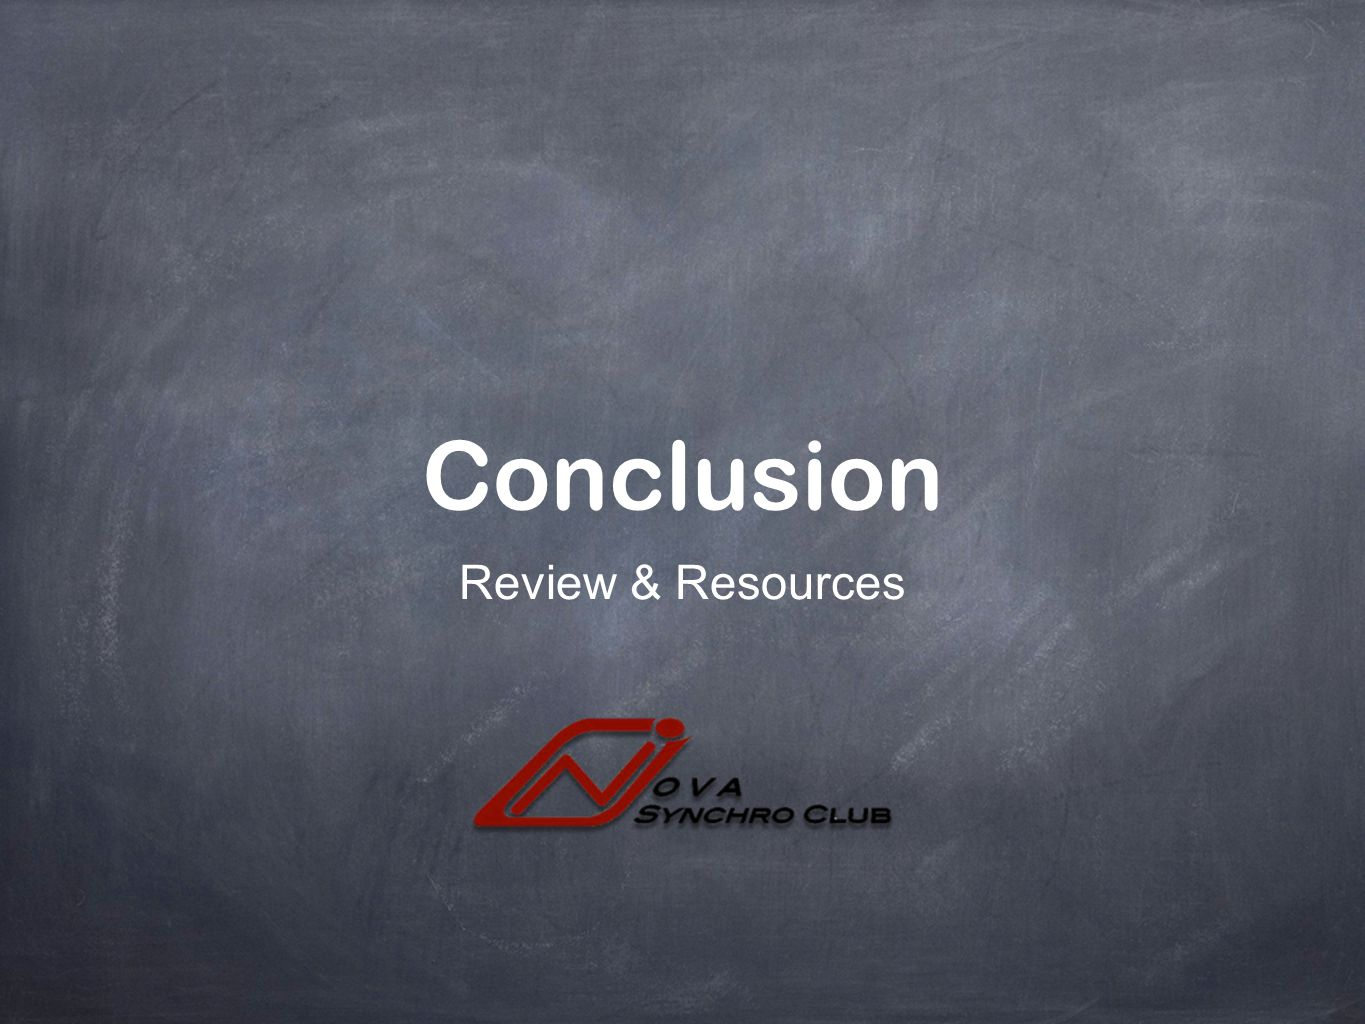 Conclusion Review & Resources